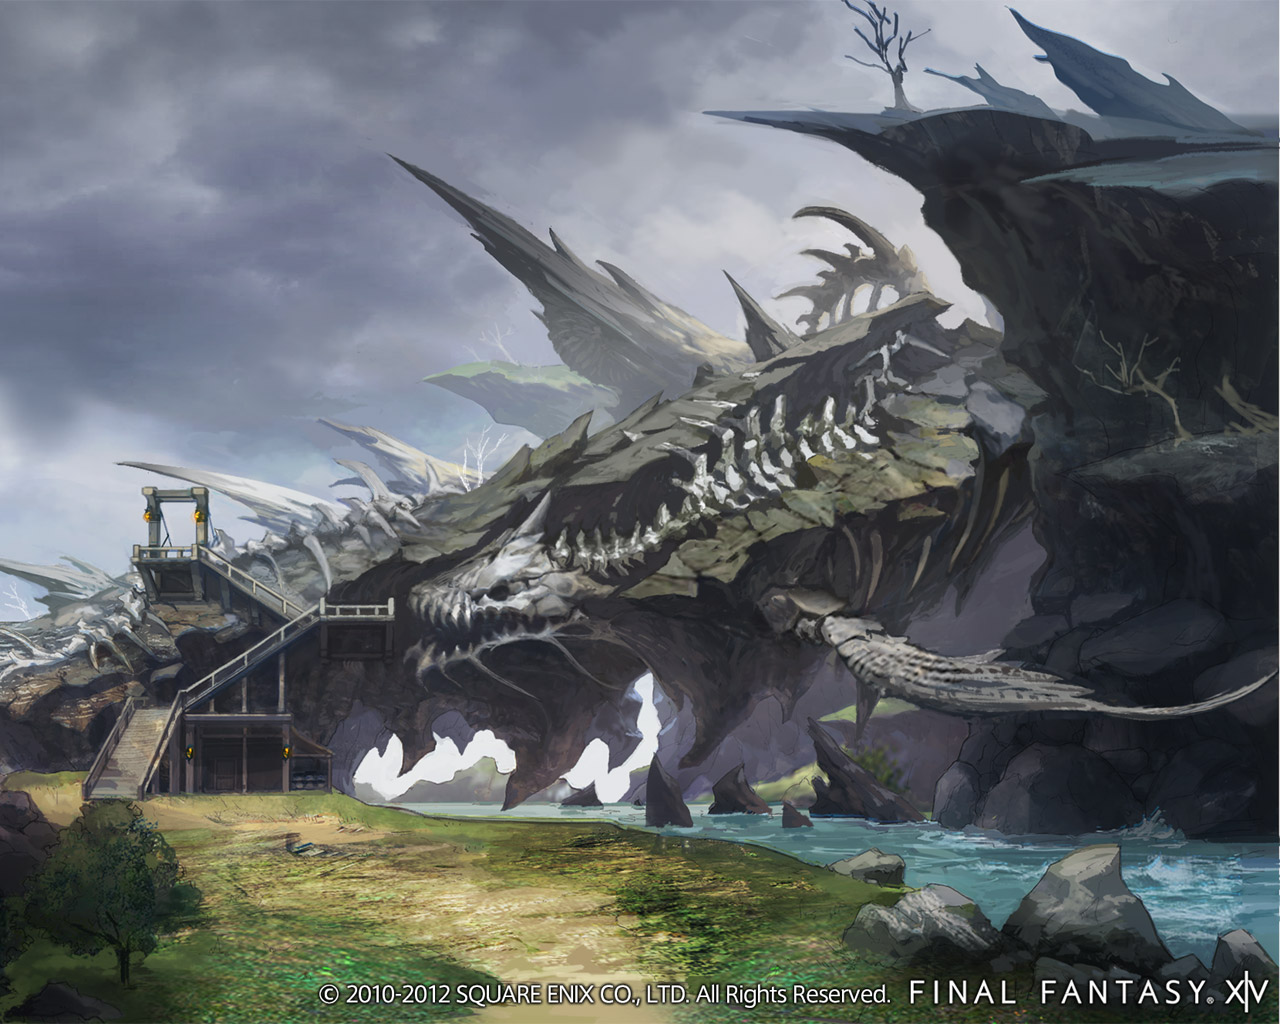 Free Final Fantasy XIV Wallpaper in 1280x1024